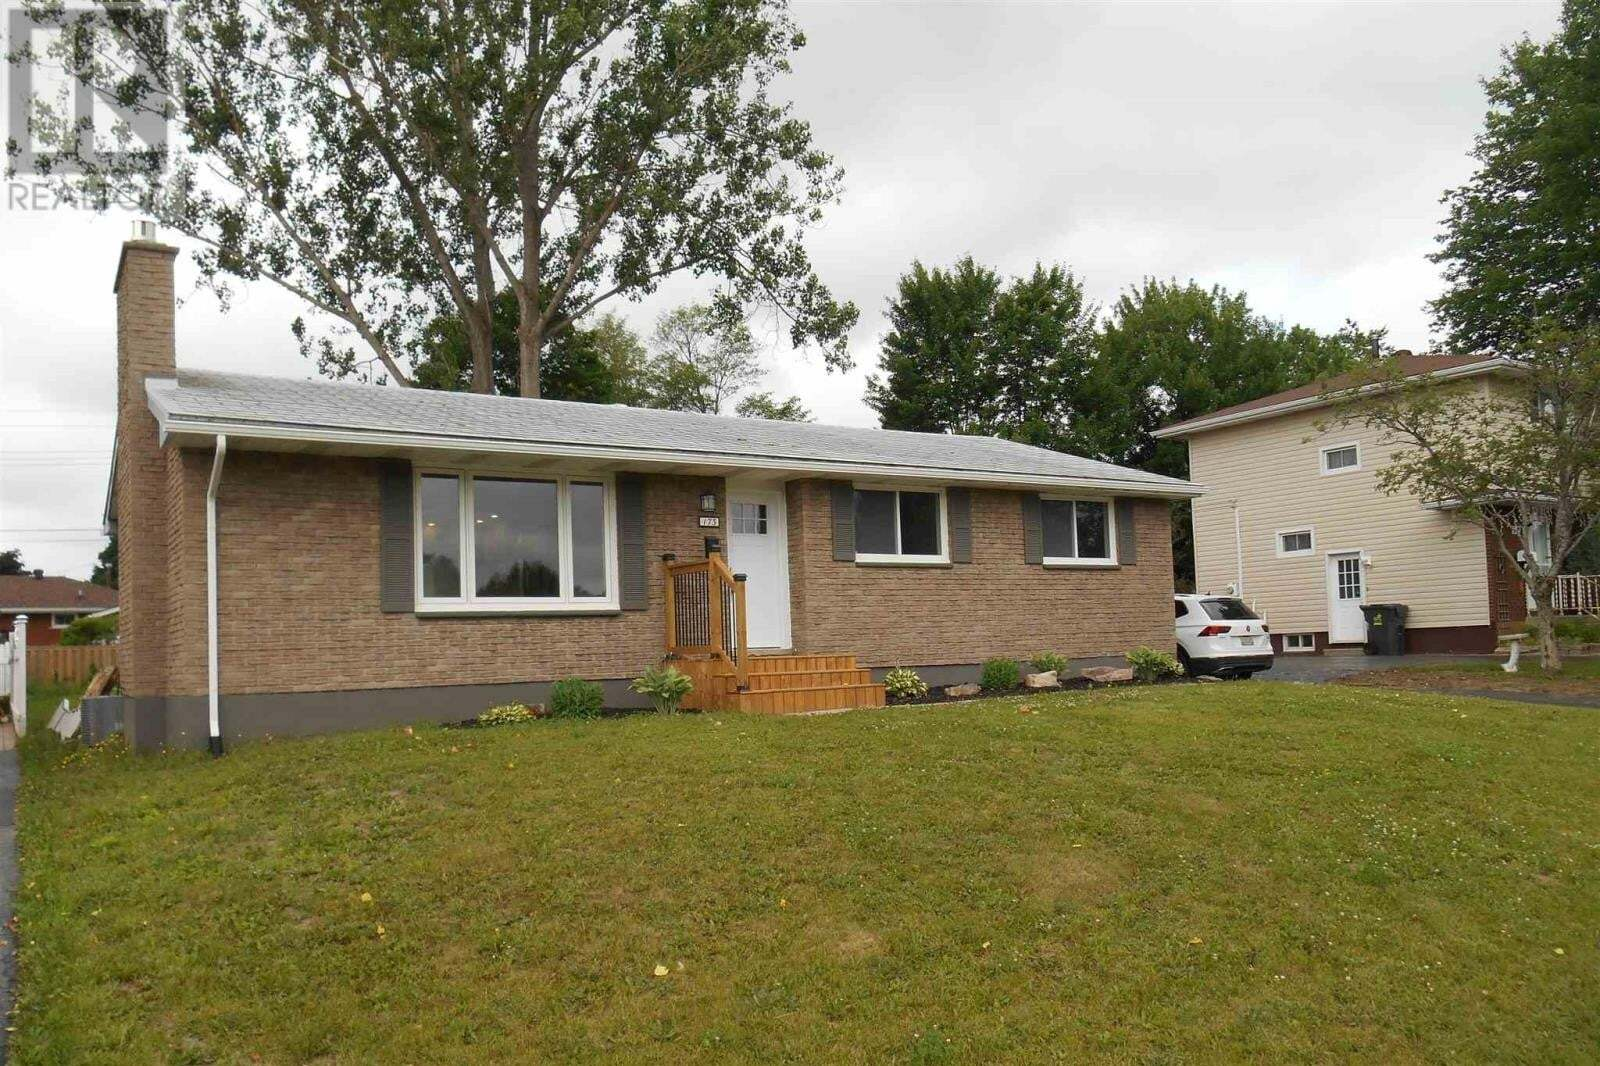 House for sale at 173 Glen Ave Sault Ste. Marie Ontario - MLS: SM129083